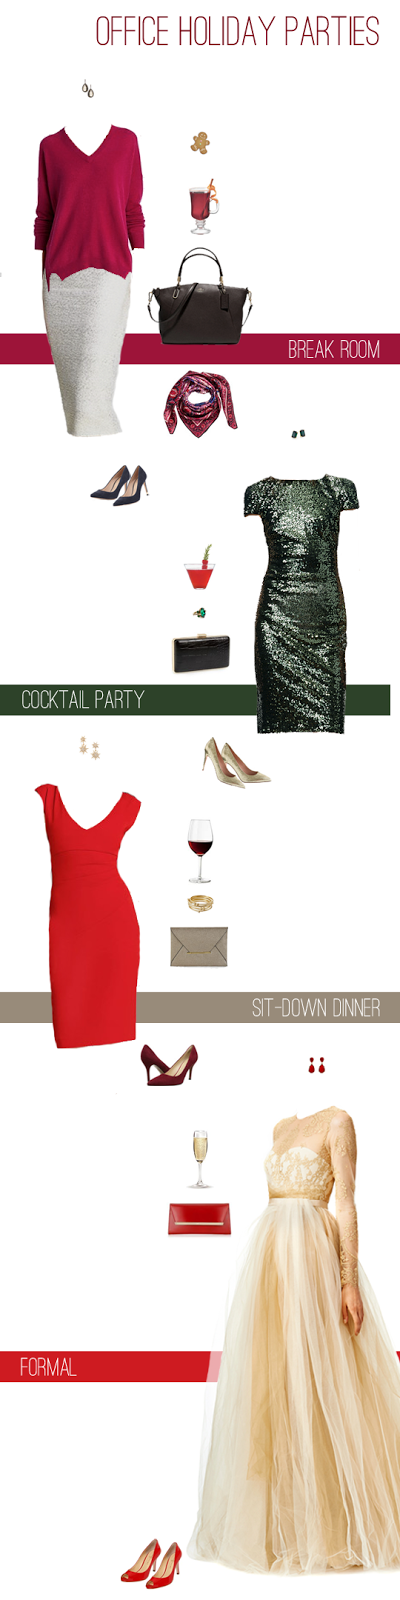 48769a1ce0 The Definitive Guide to Dressing for Your Office Holiday Party ...